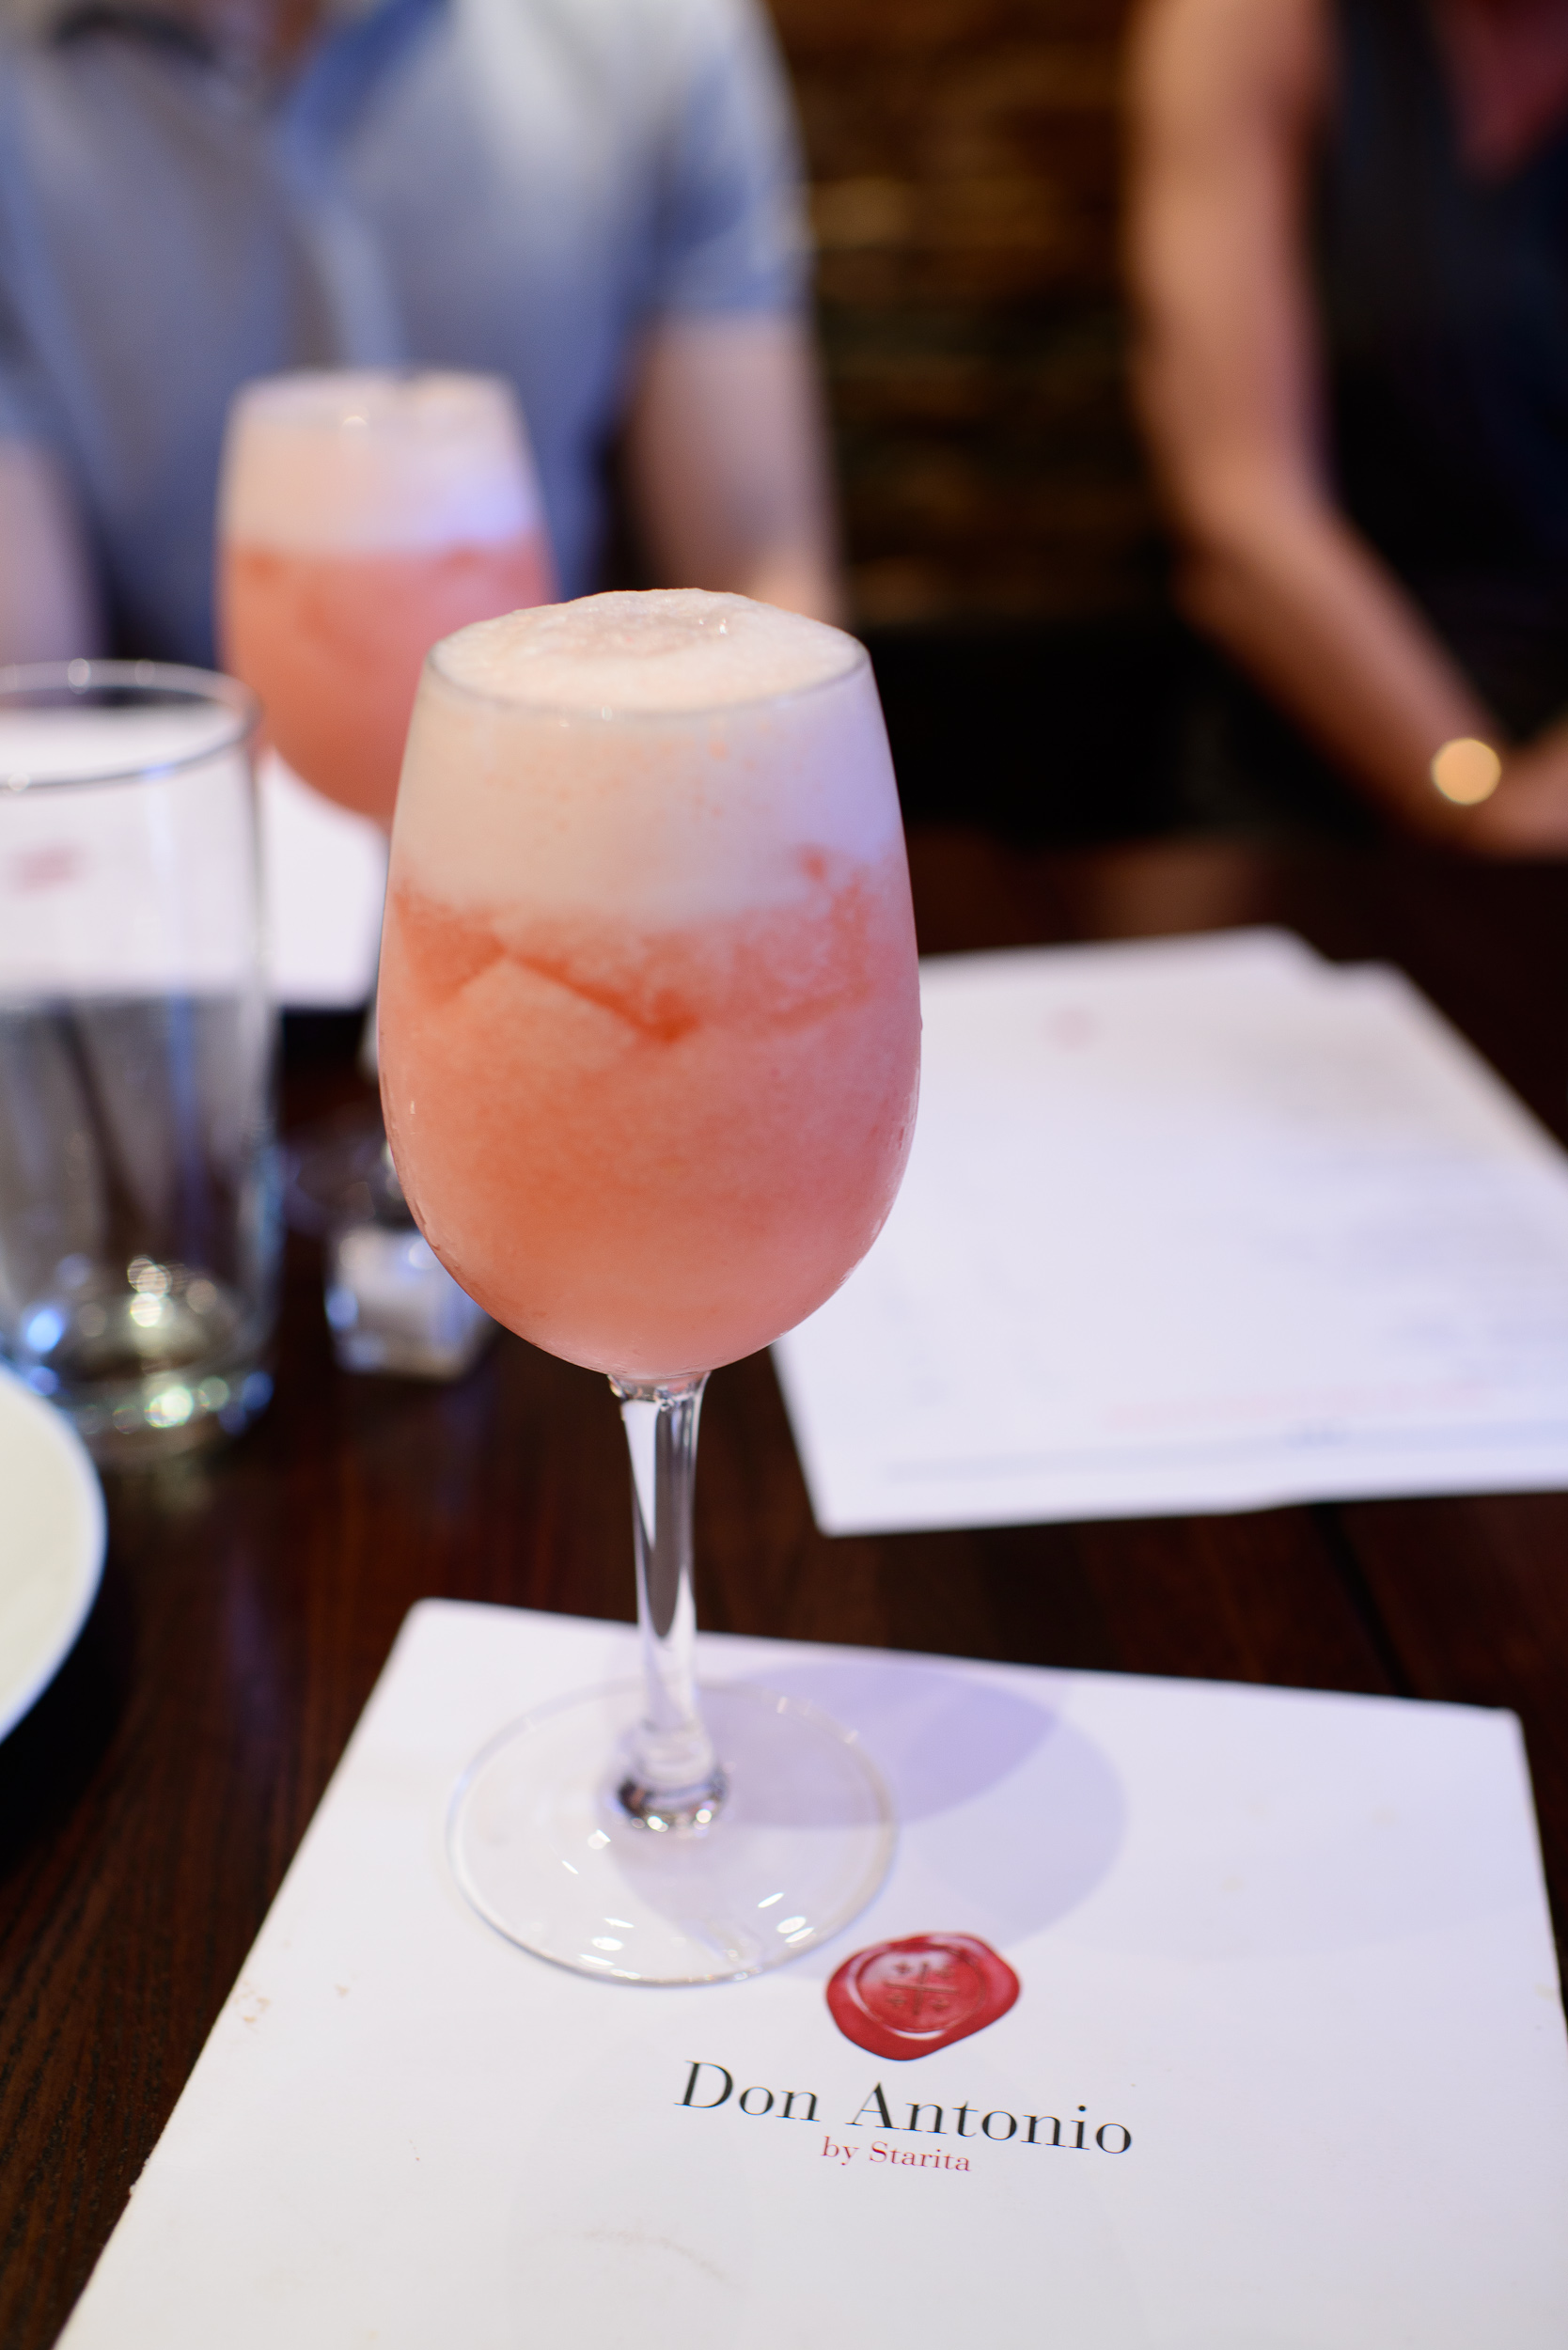 House-made bellini